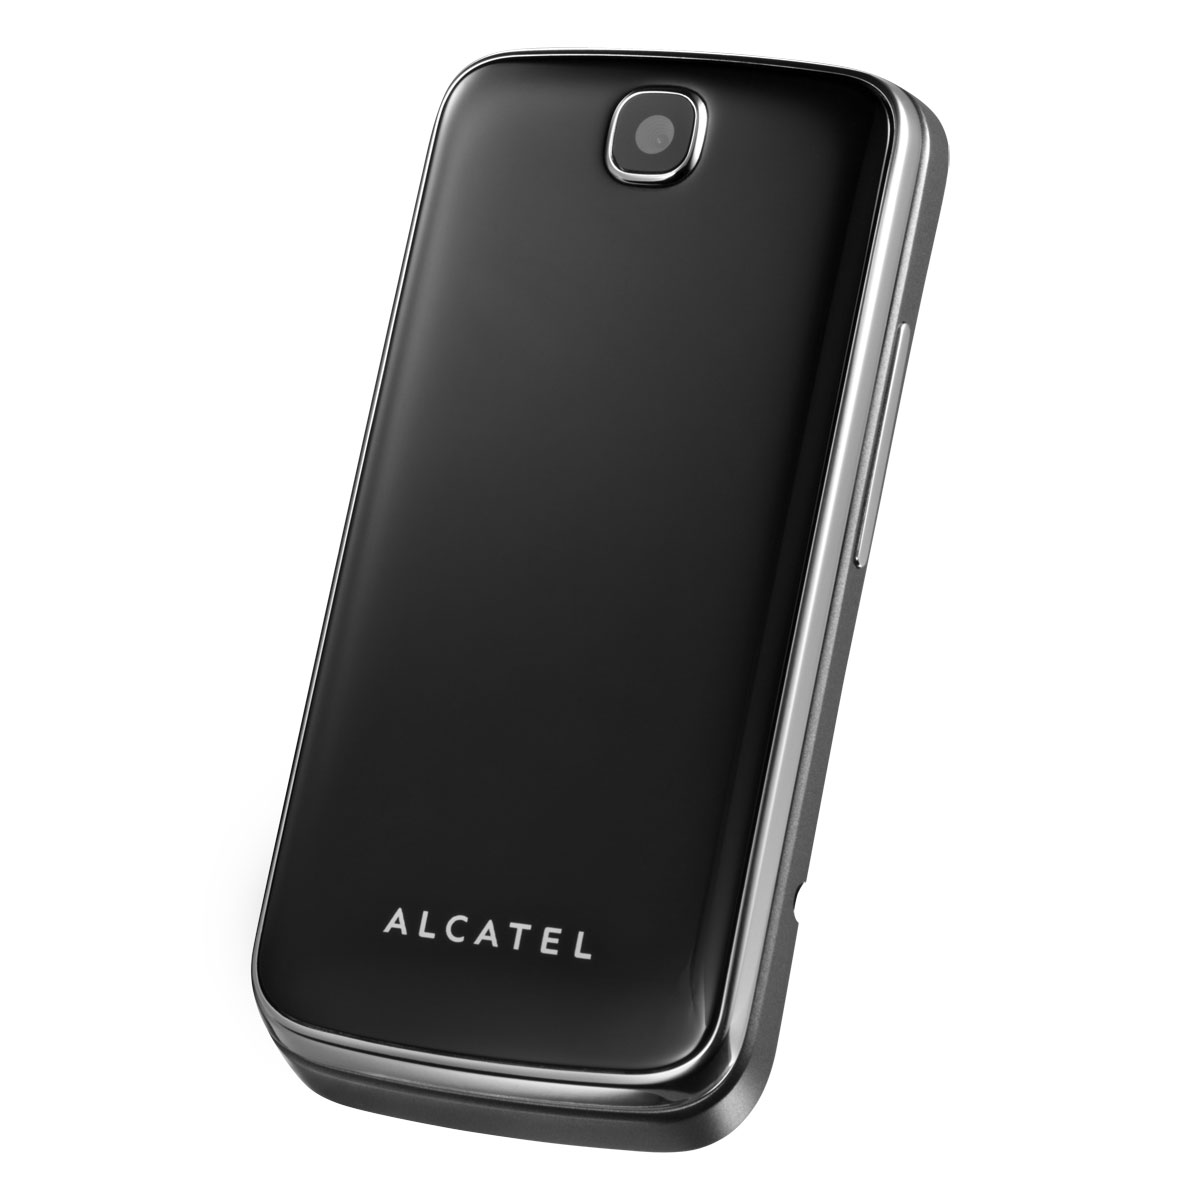 alcatel 2010d officer mobile smartphone alcatel sur. Black Bedroom Furniture Sets. Home Design Ideas